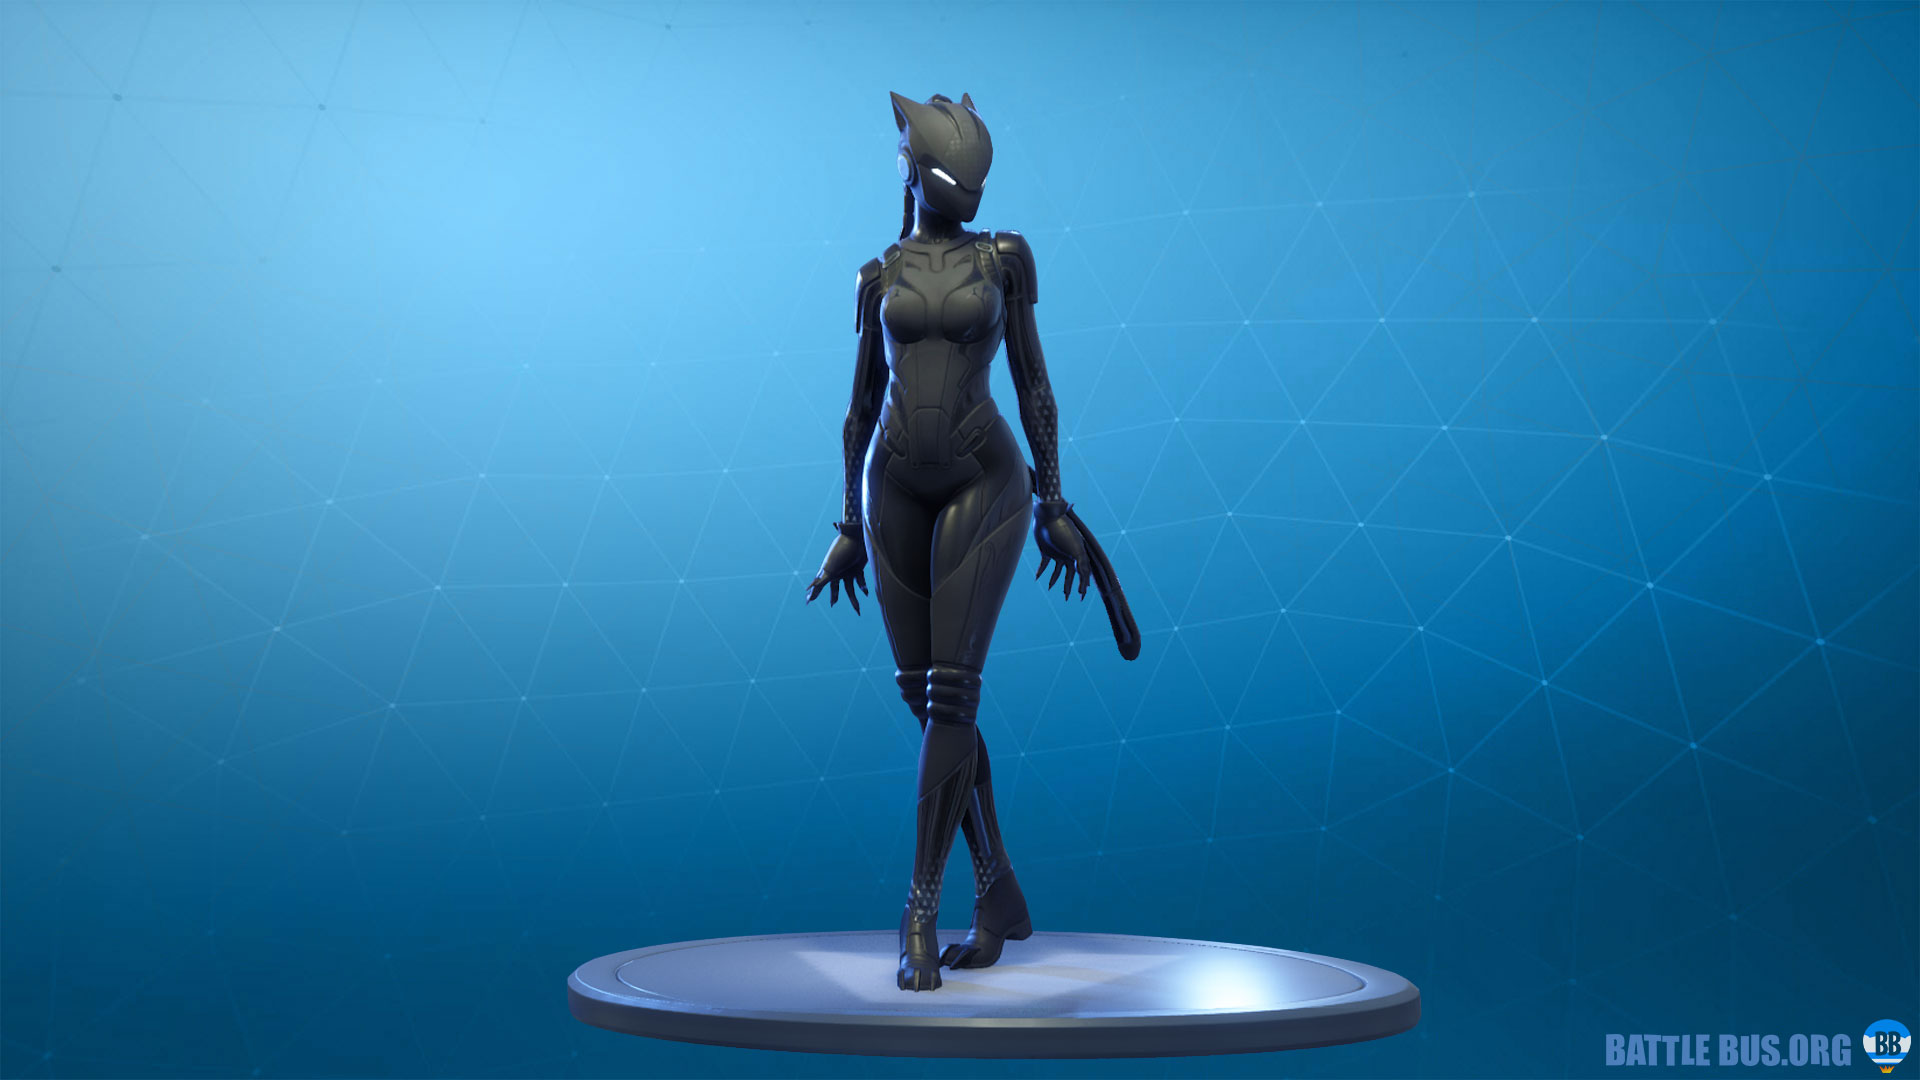 lynx fortnite skin black - lynx fortnite skin red